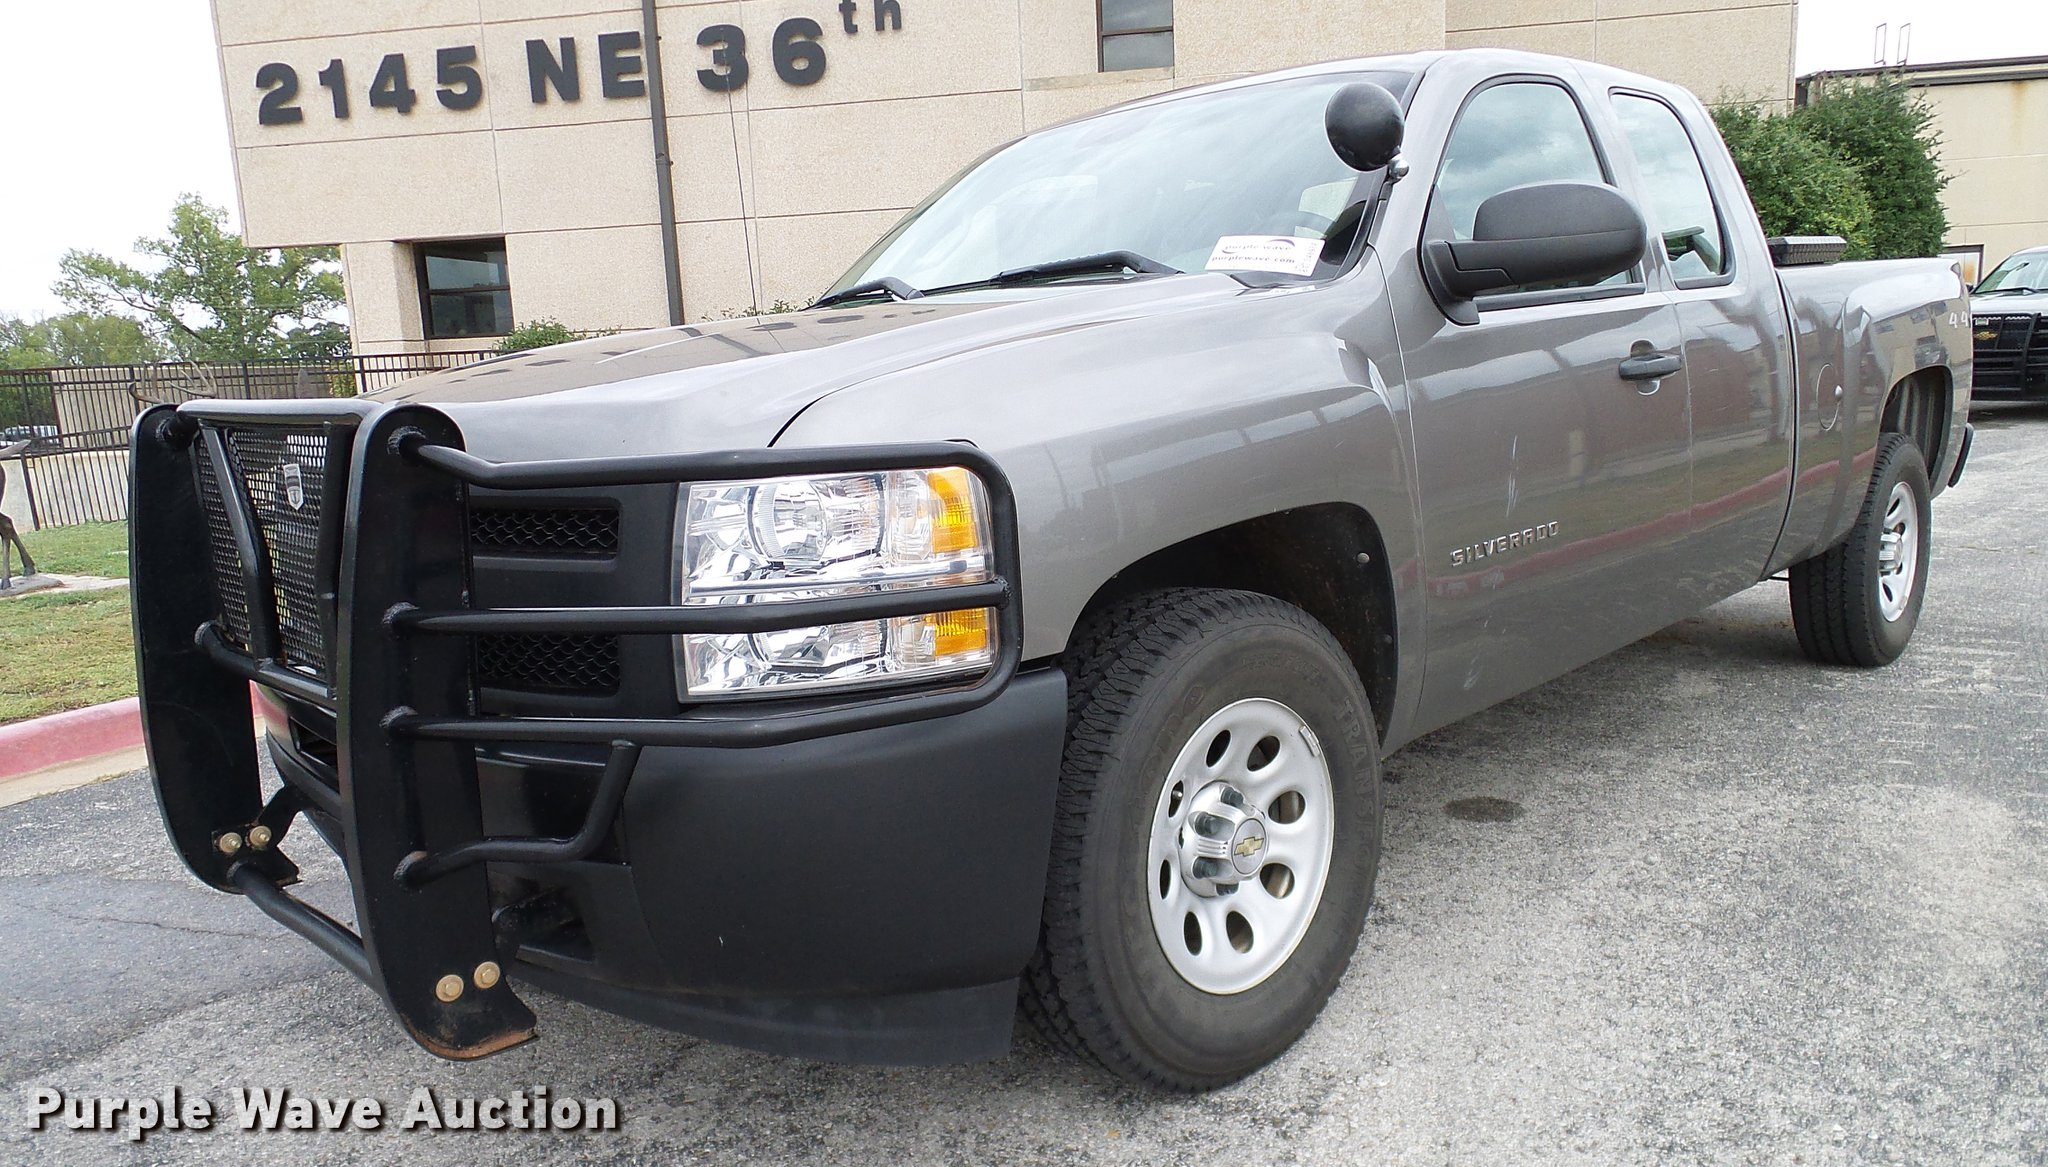 2012 Chevrolet Silverado 1500 Ext Cab Pickup Truck Item D Gm Power Window Wiring Full Size In New